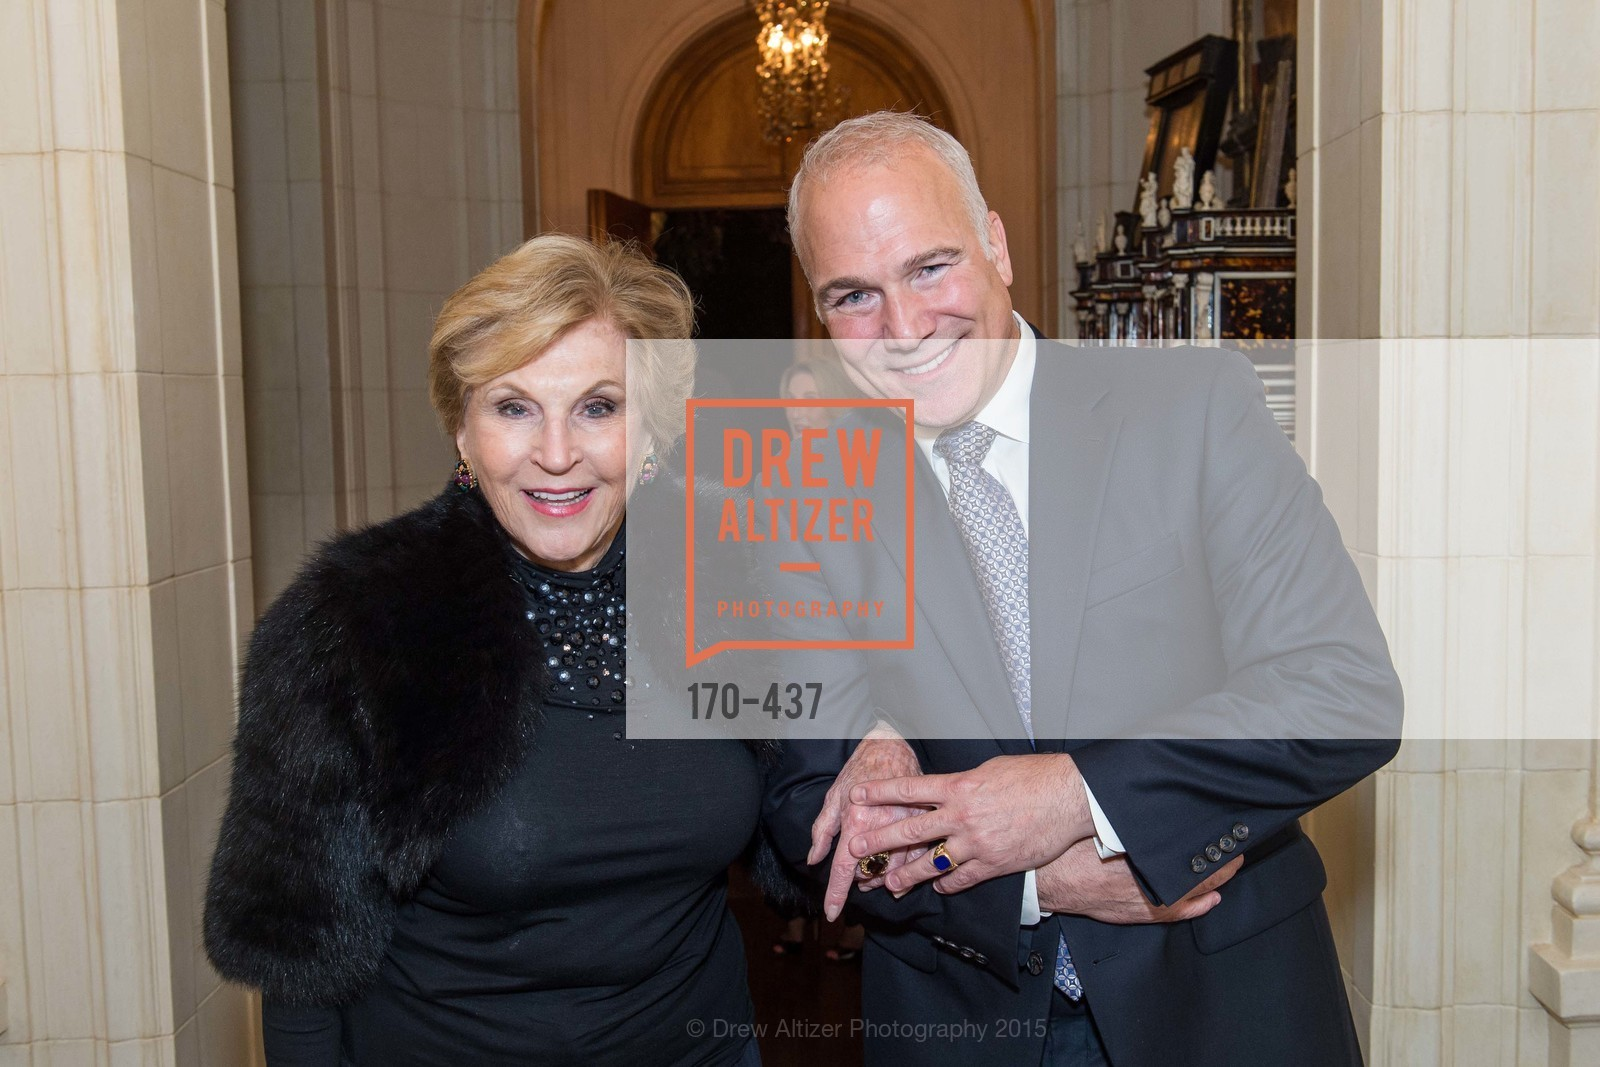 Lois Lehrman, Franc D'Ambrosio, FDS Vintner Reception and Dinner, Private Residence, November 4th, 2015,Drew Altizer, Drew Altizer Photography, full-service agency, private events, San Francisco photographer, photographer california